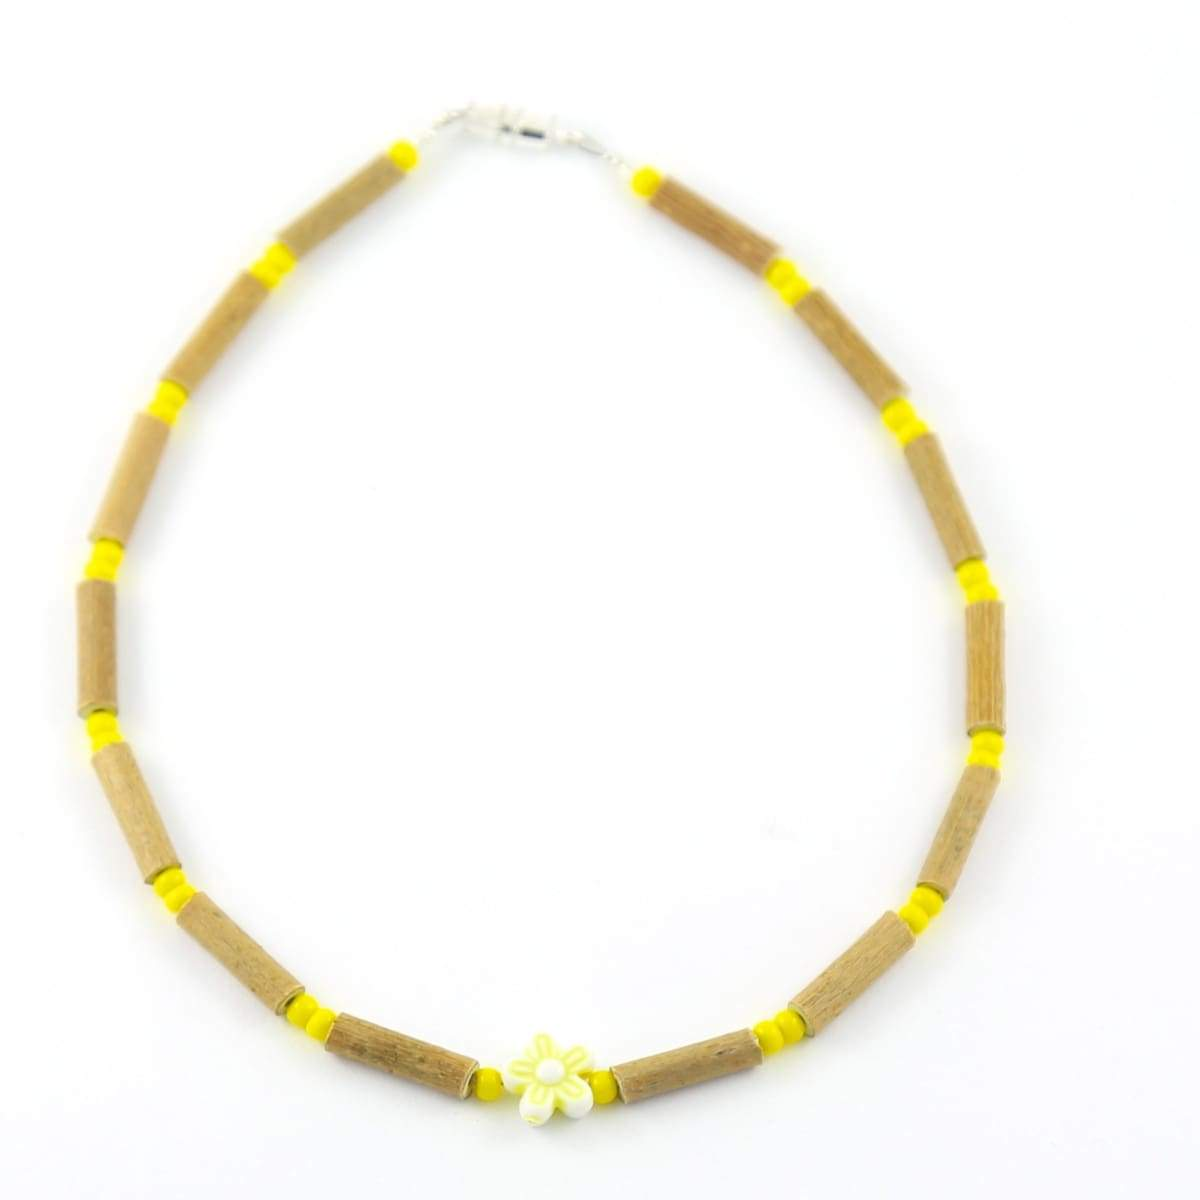 Hazelwood Yellow Flower - 11 Necklace - Barrel Twist Clasp - Hazelwood Jewelry